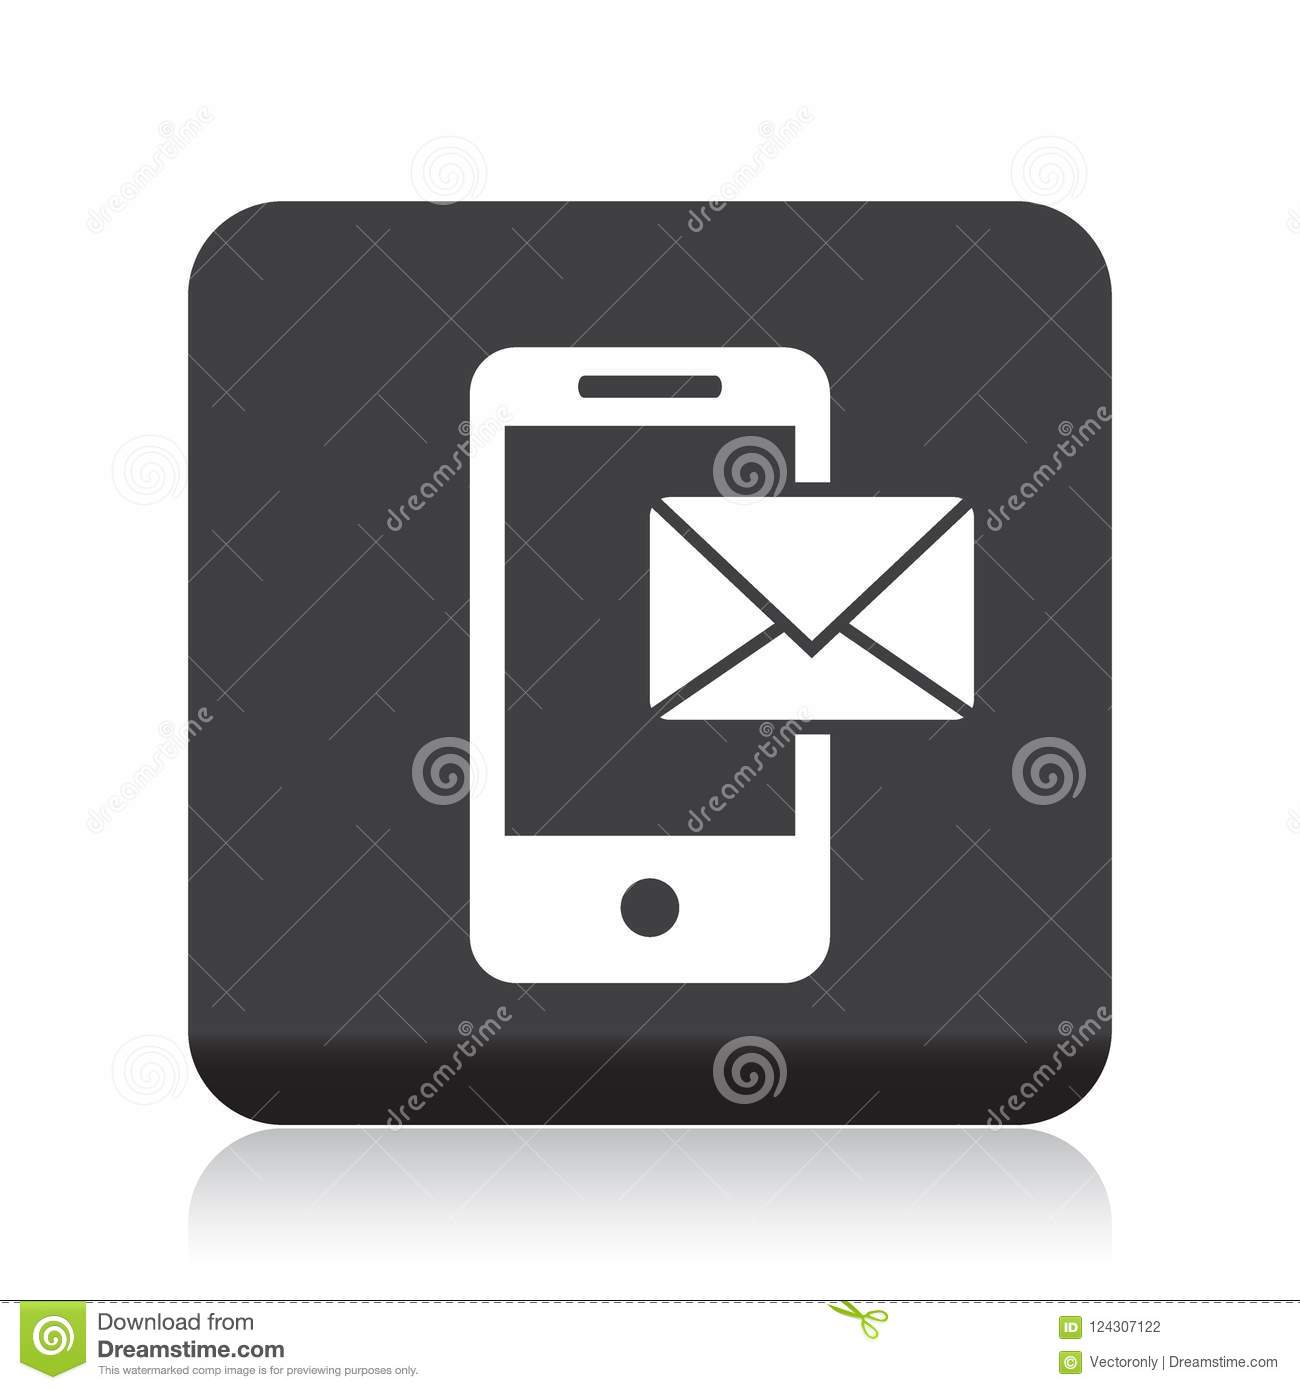 Mail on mobile icon